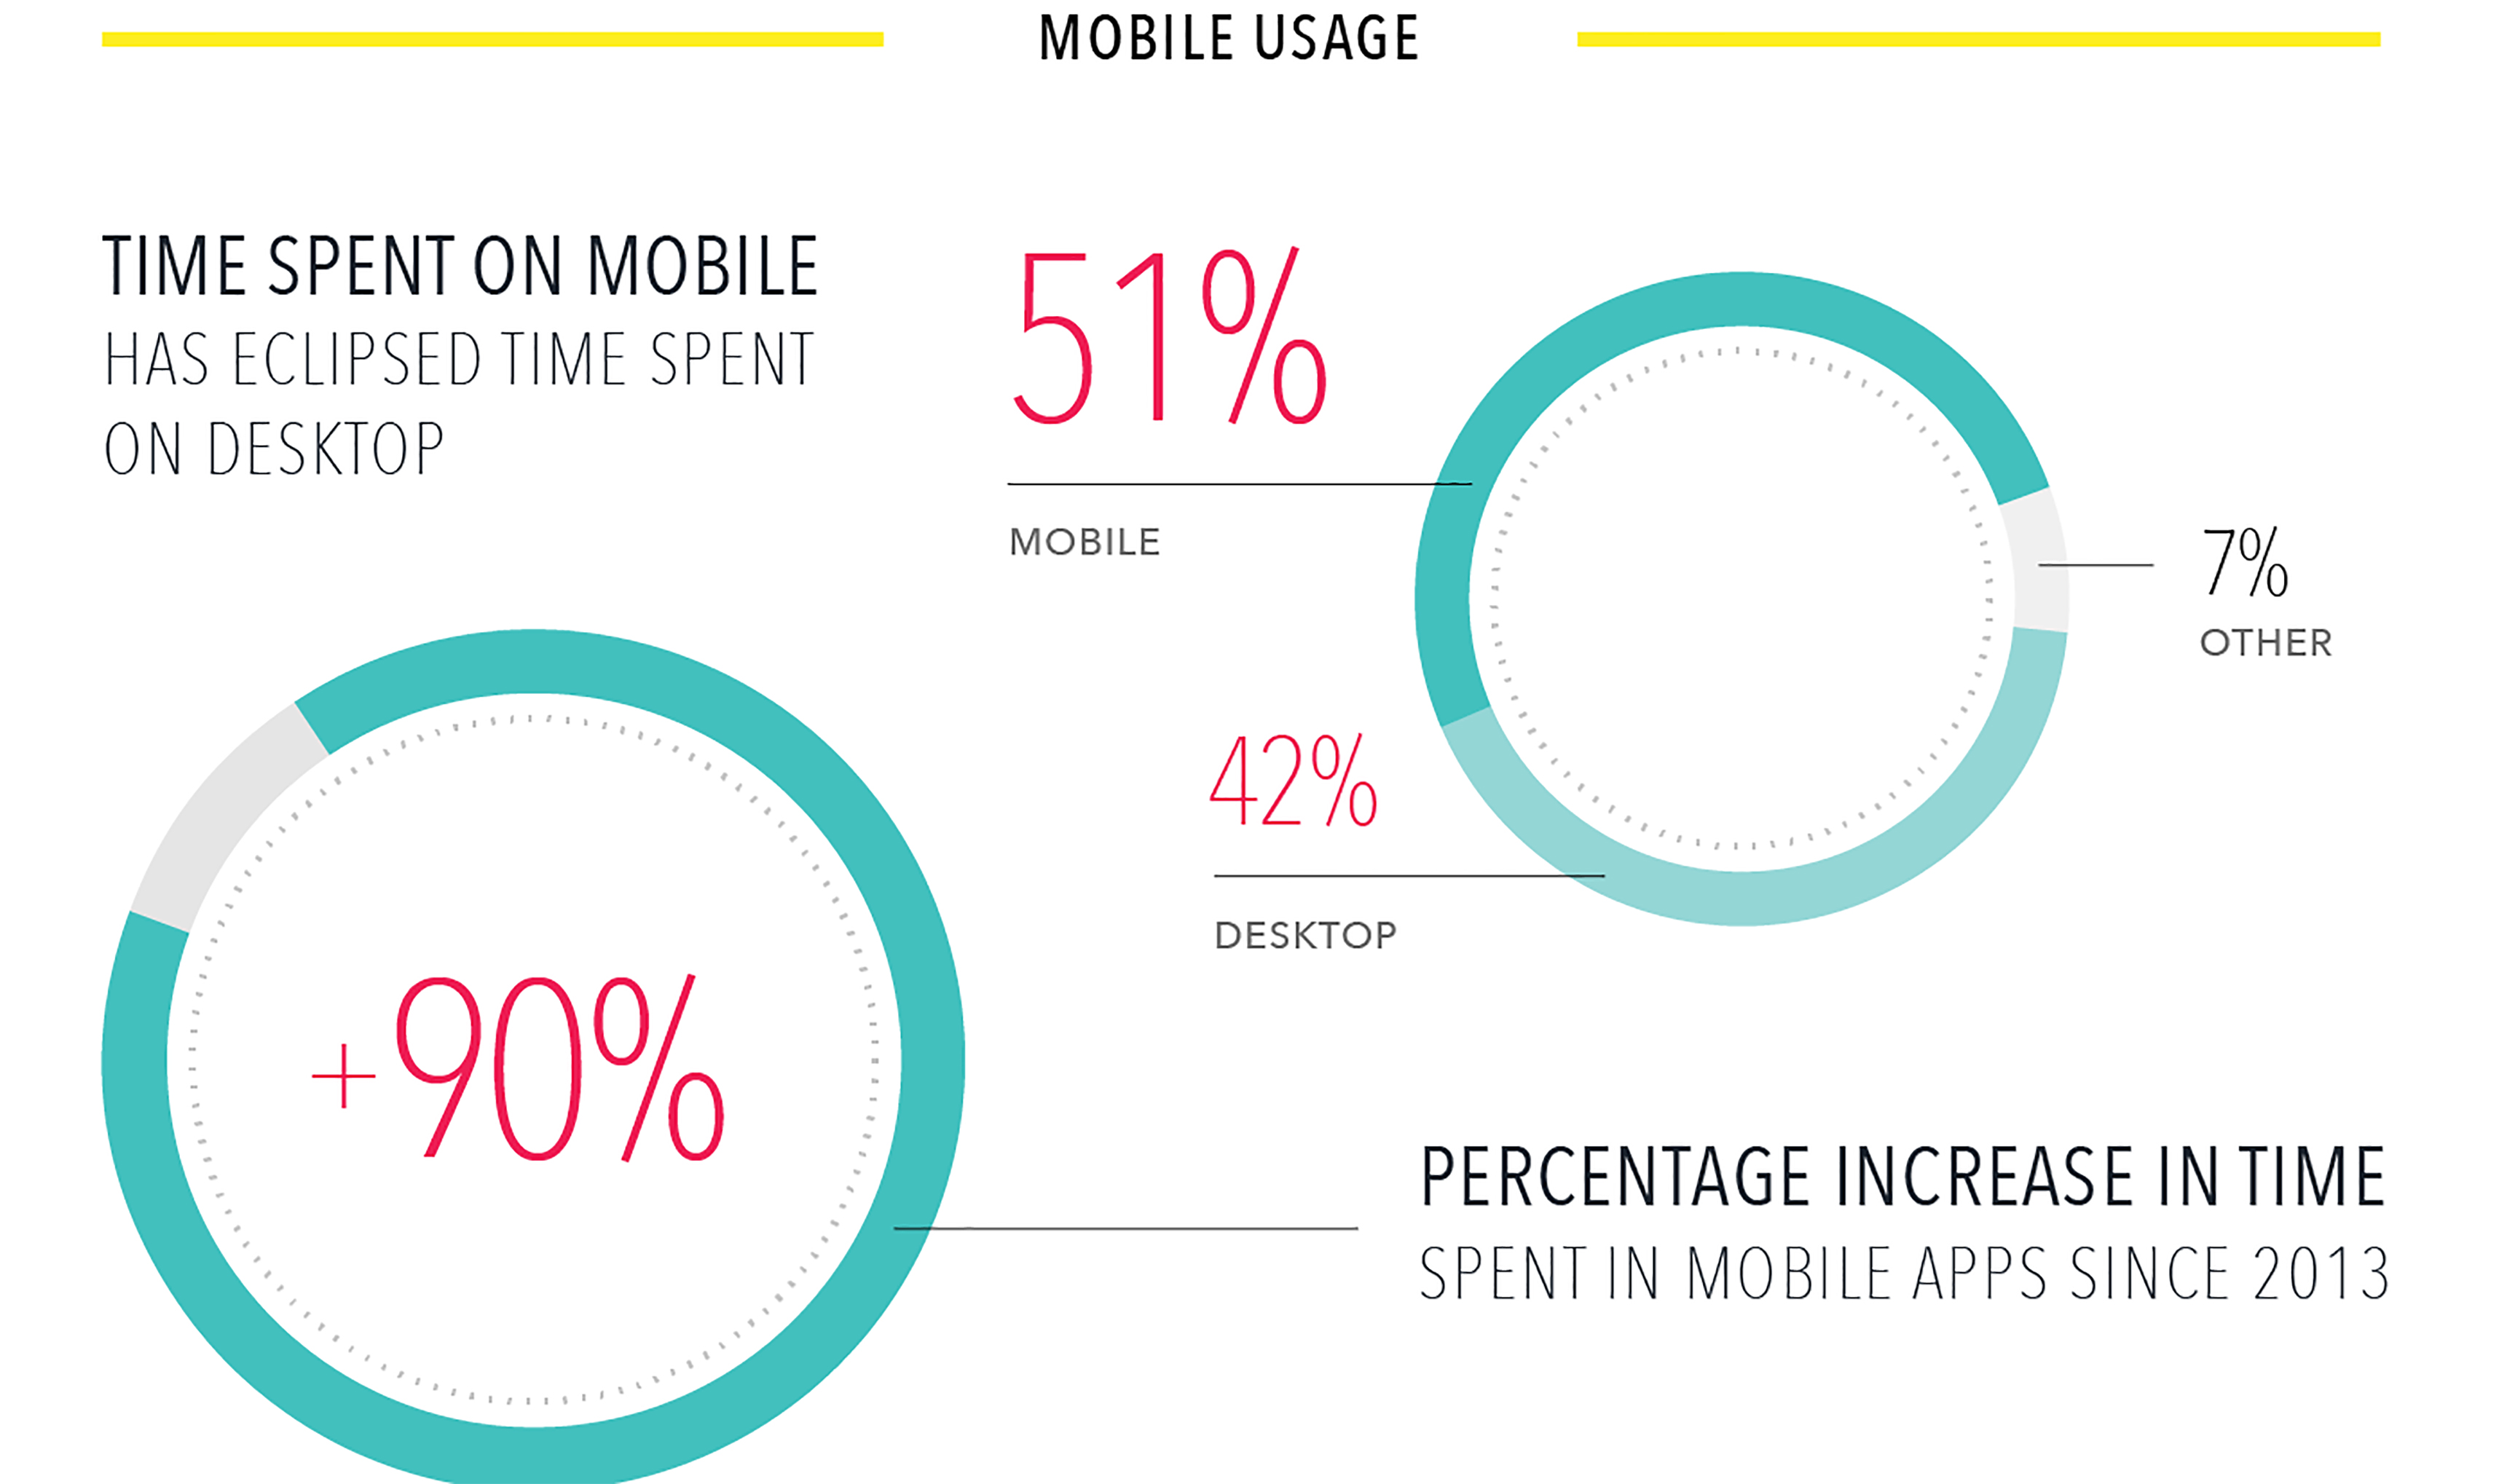 Appboy Infographic Mobile Usage Stats